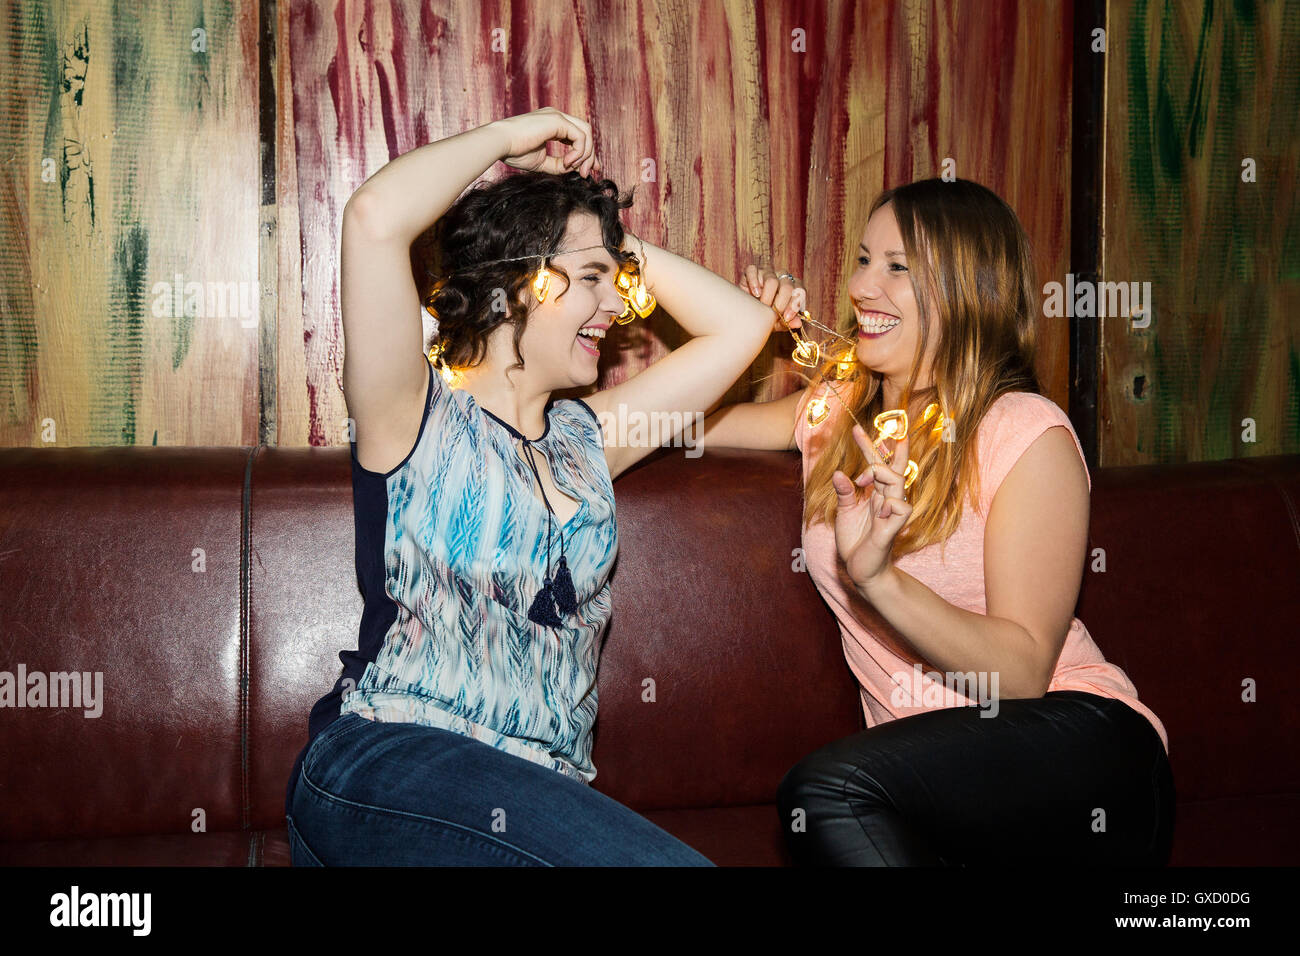 Two adult female friends putting on fairy lights on night out in bar - Stock Image